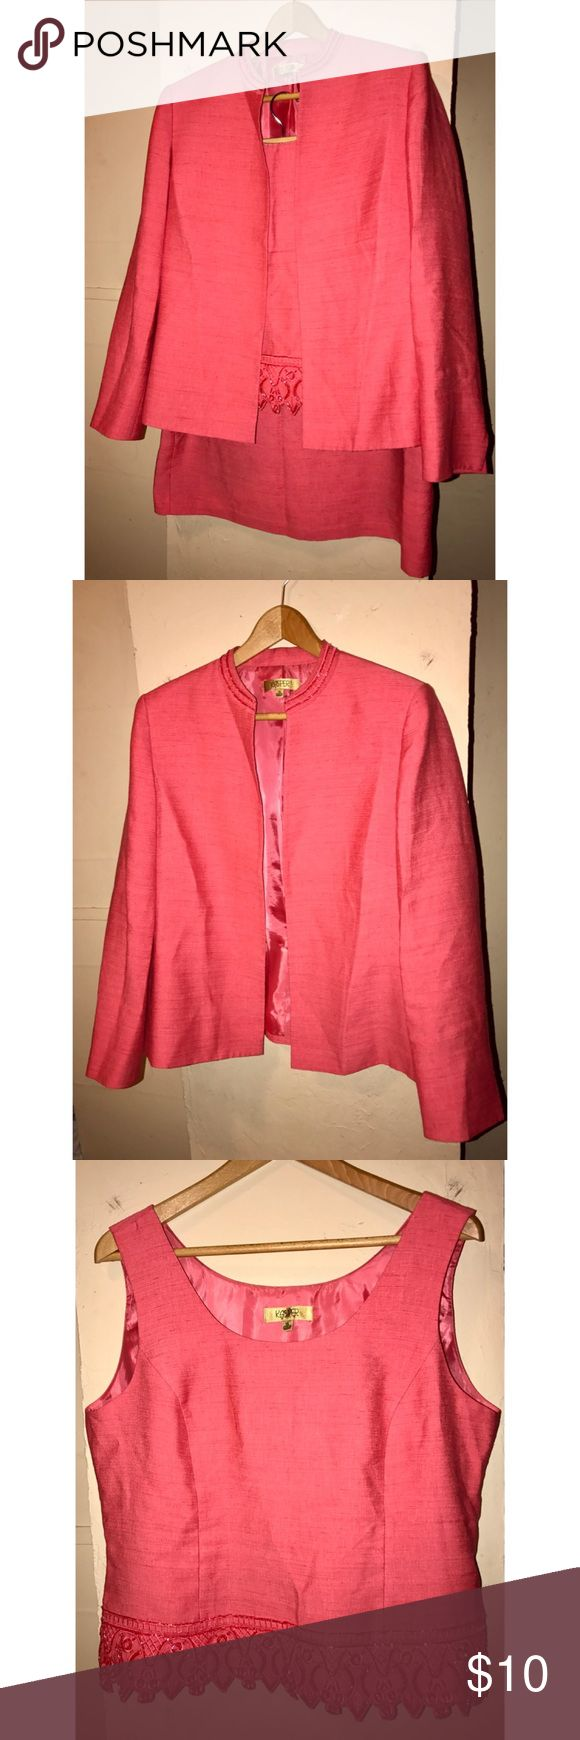 Women's skirt suit. 3 piece women's skirt suit. In good condition, some beading detail on the Blazer and top.                                 🔹Offers Welcome Skirts